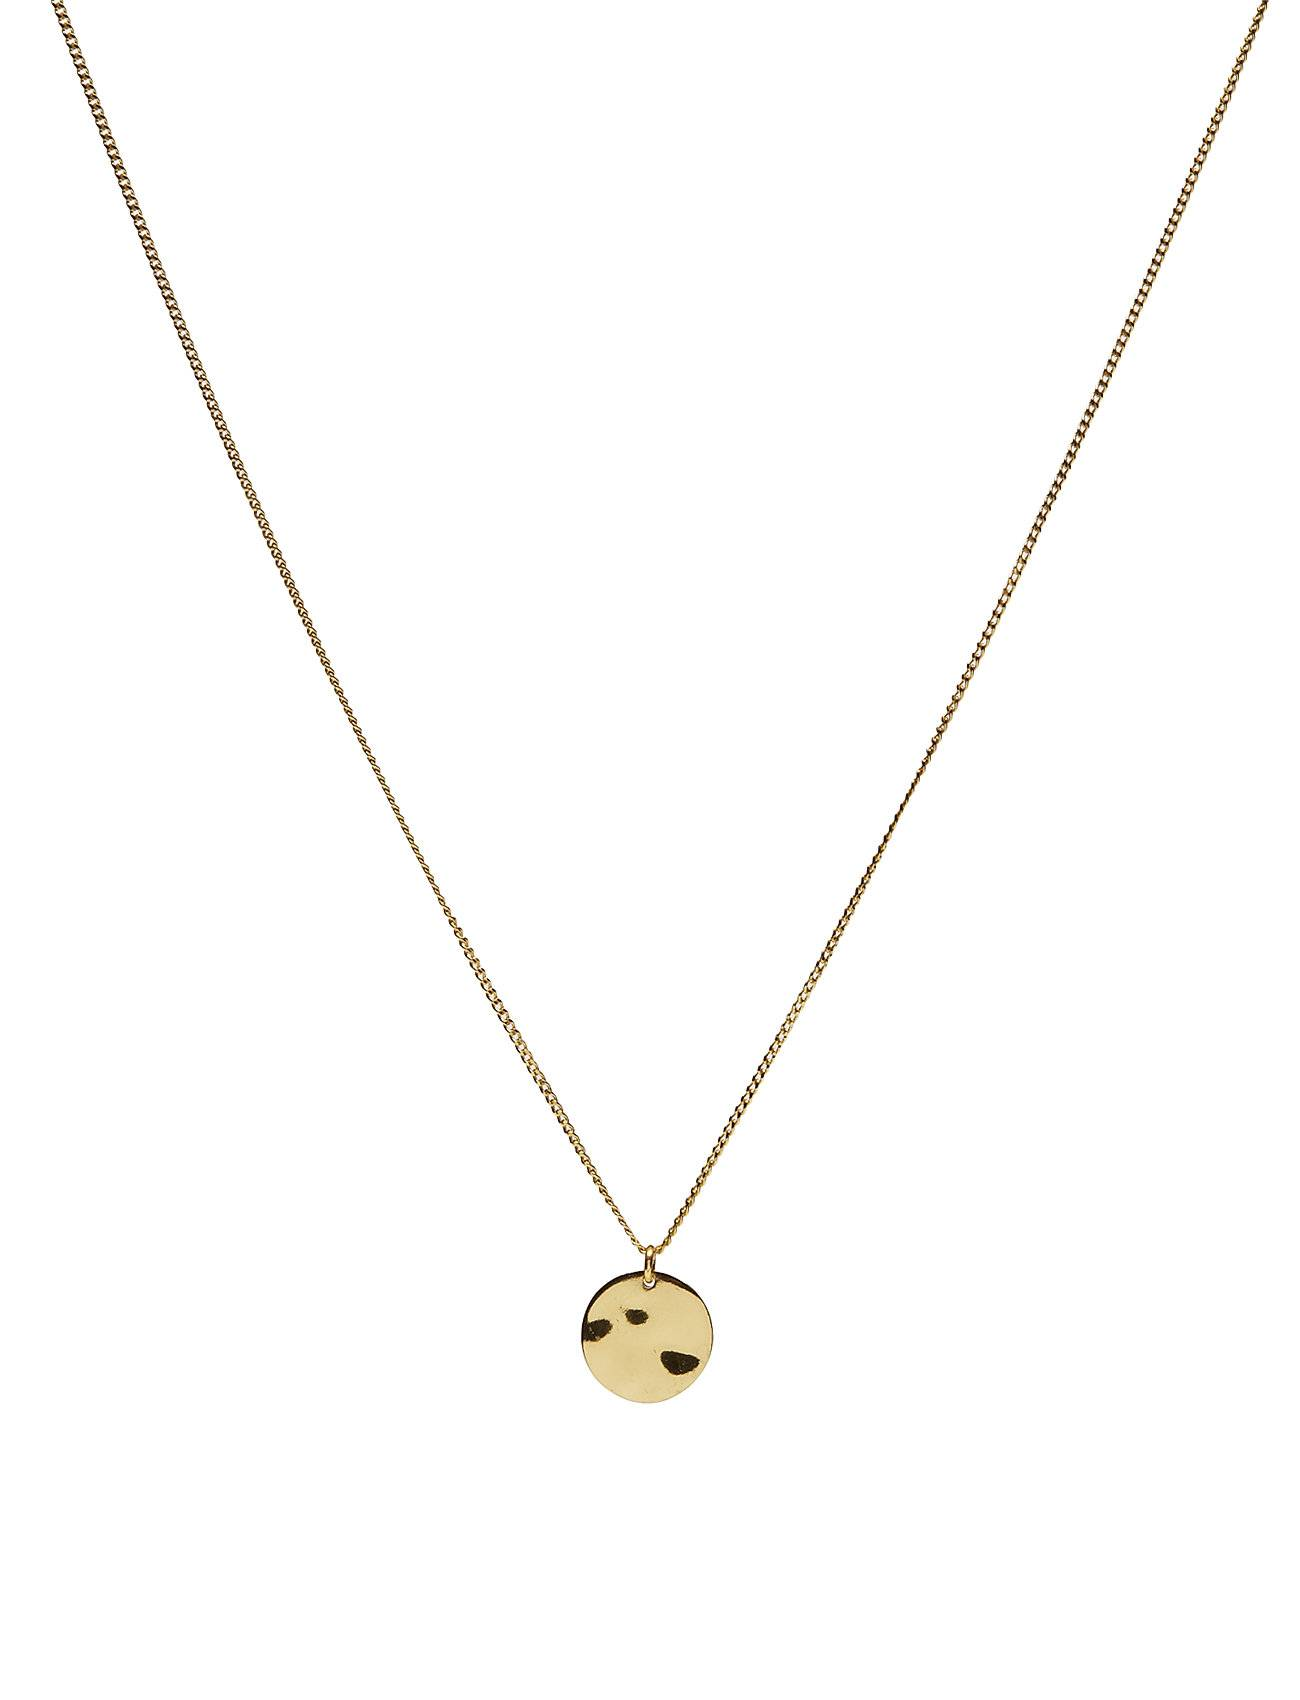 Syster P Minimalistica Hammered Circle Necklace Gold